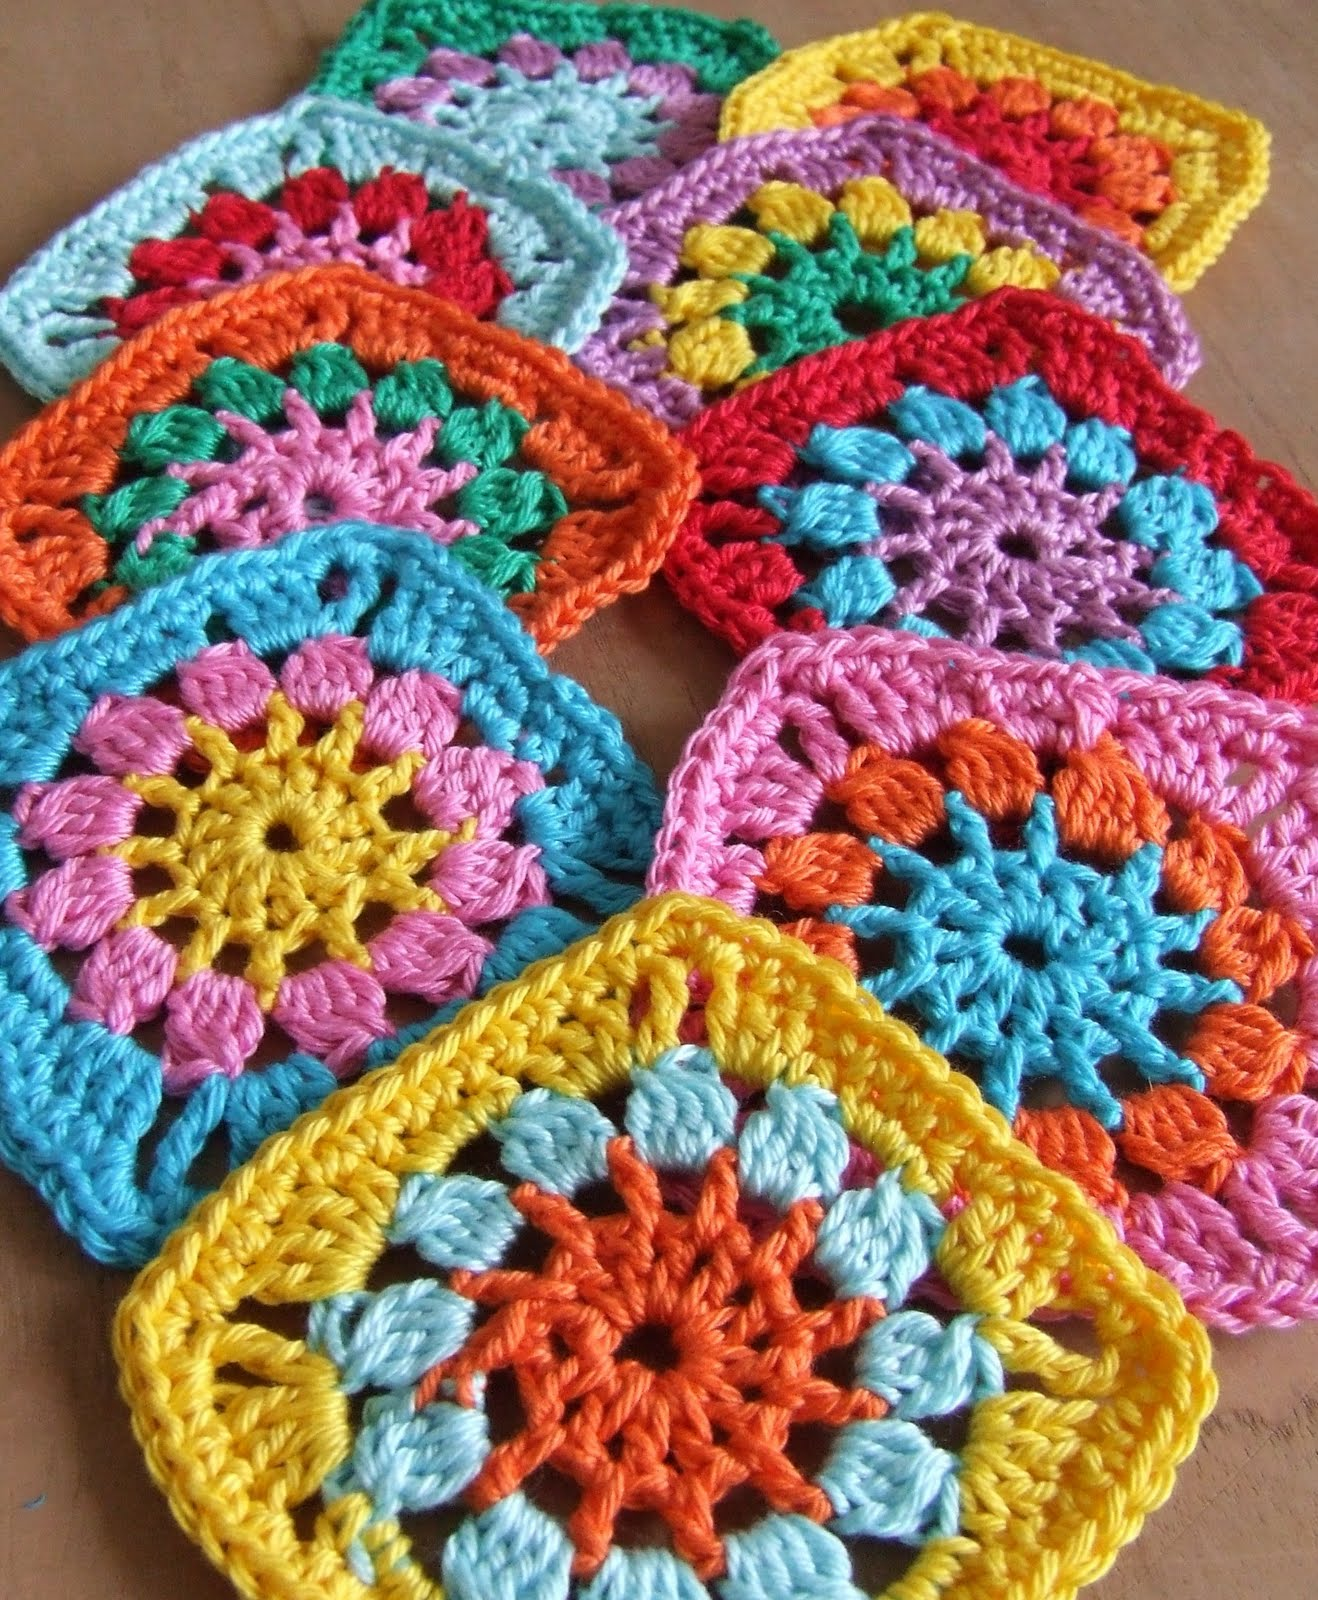 Crocheting Granny Squares : Crochet Baby Blanket Pattern Granny Square Crib by babywagz Images ...